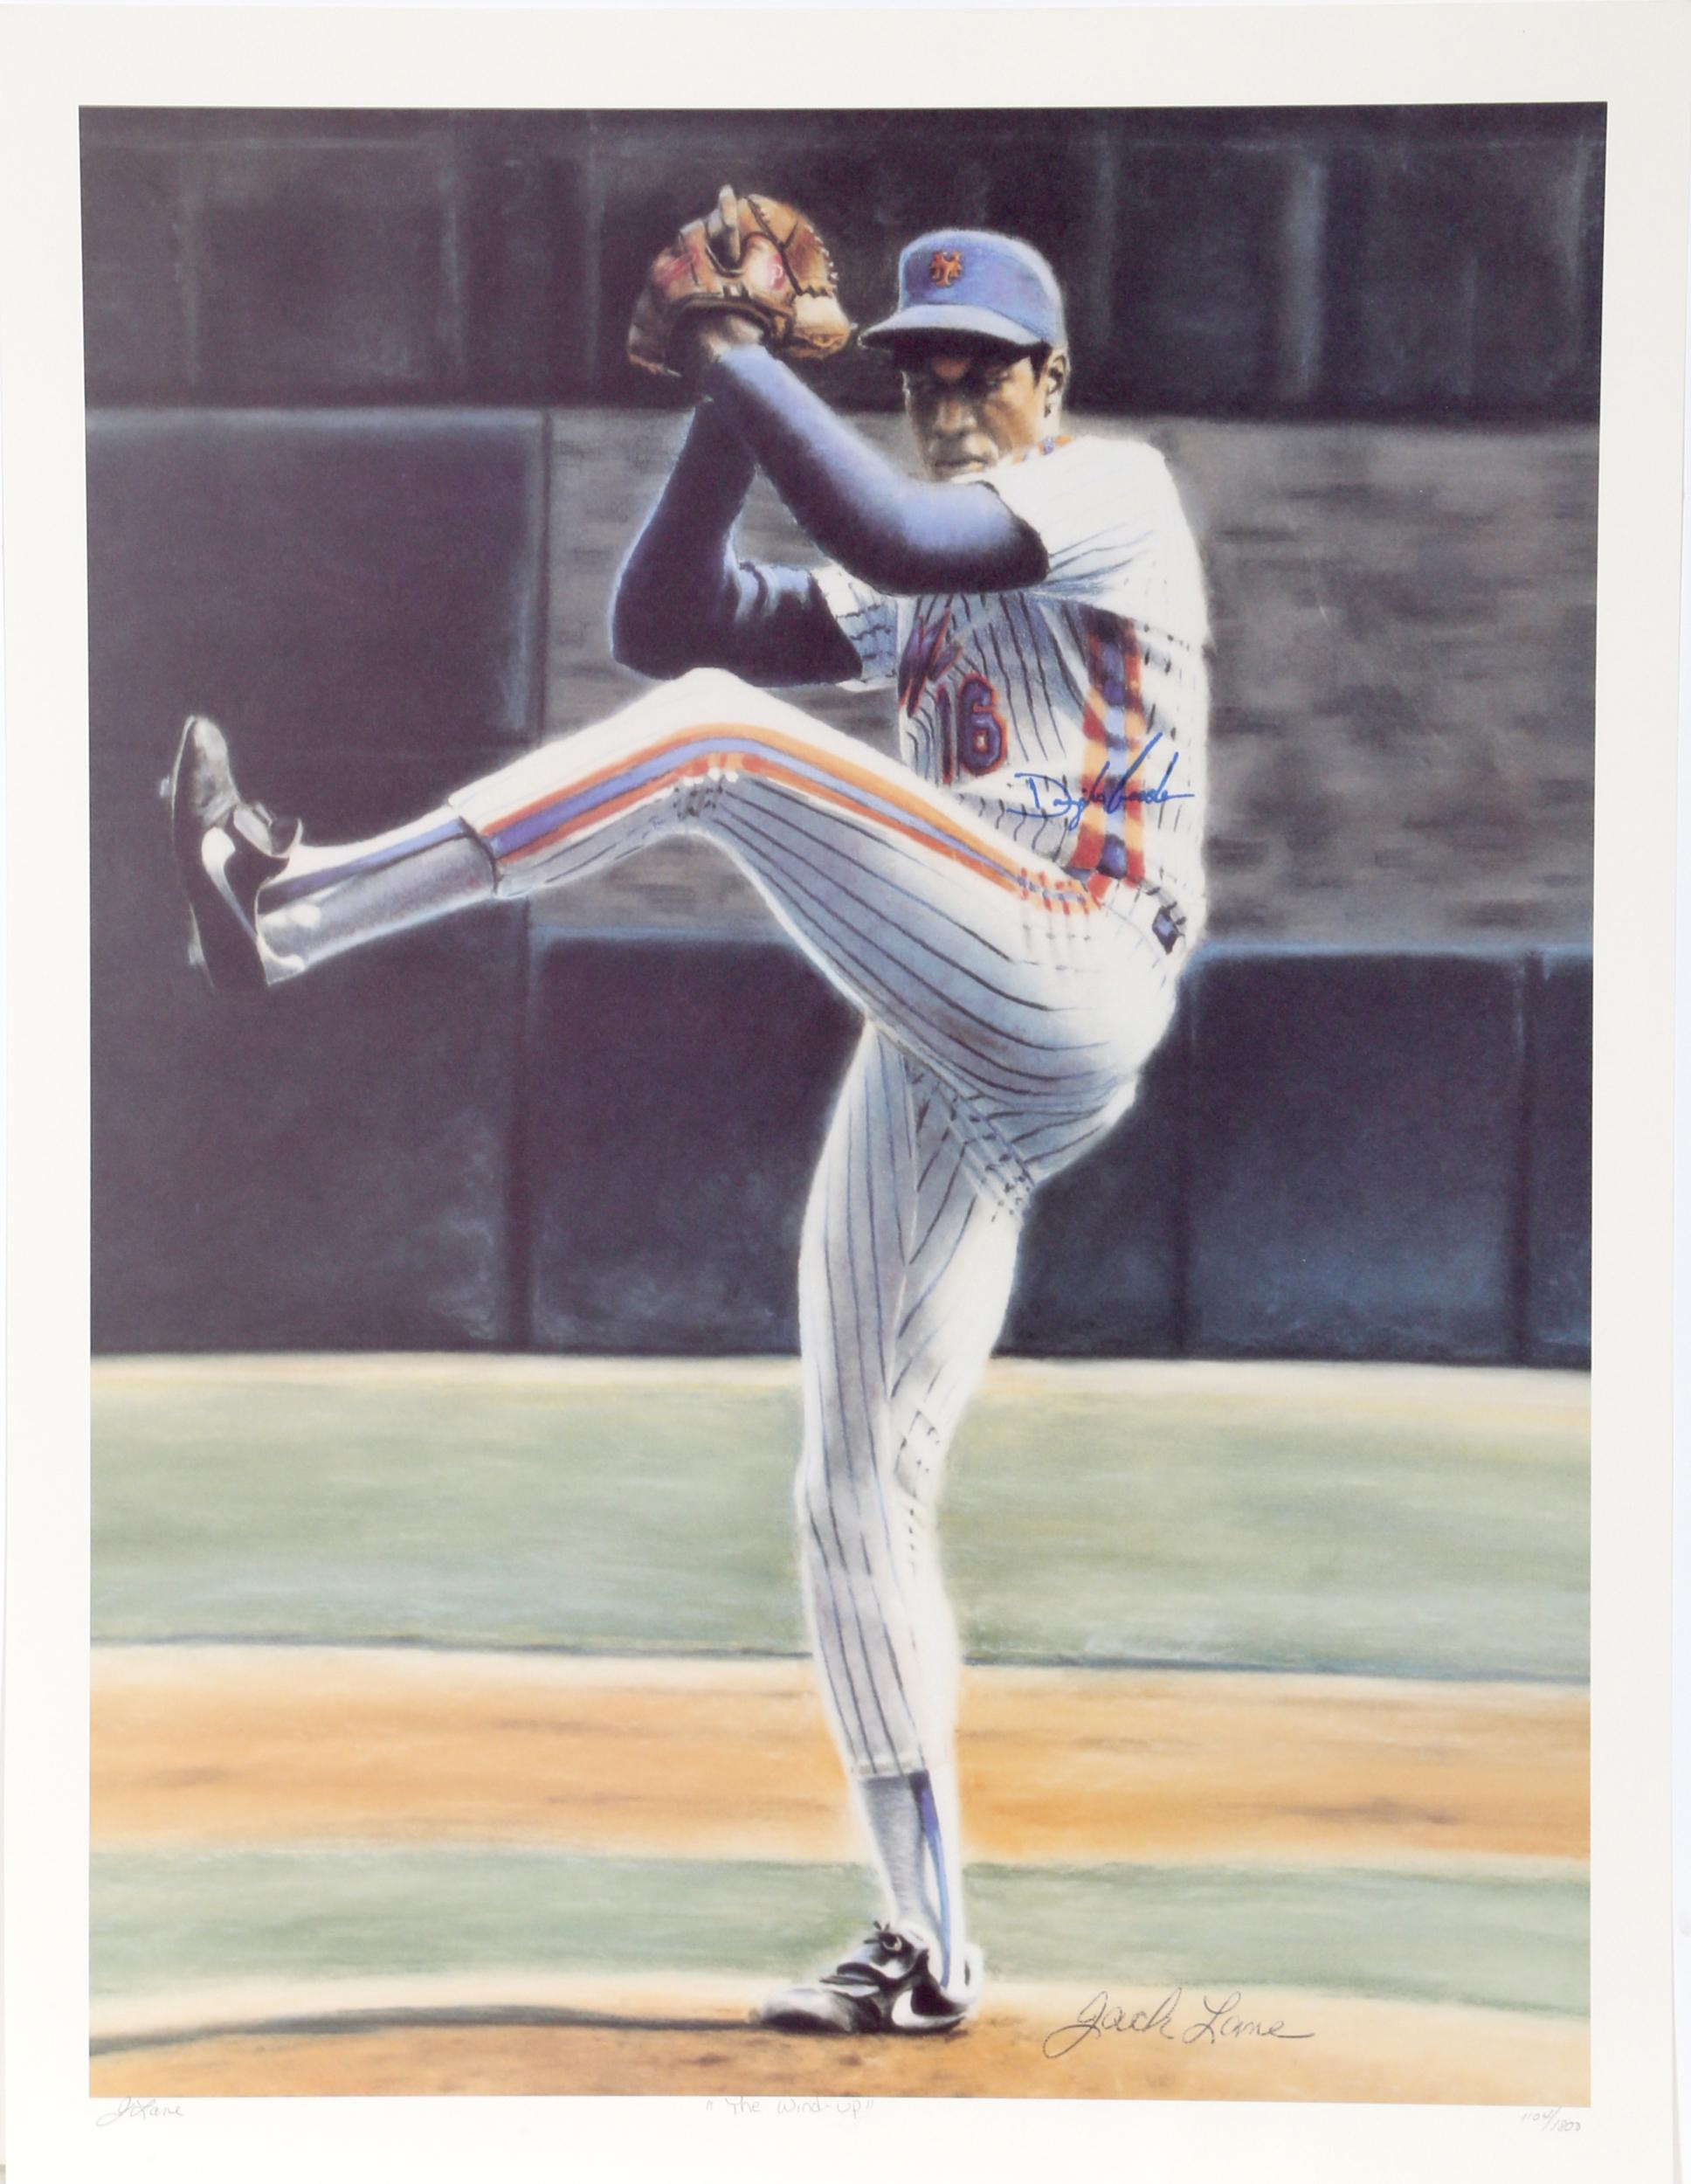 Jack Lane, The Wind Up (New York Mets Dwight Gooden), Offset Lithograph